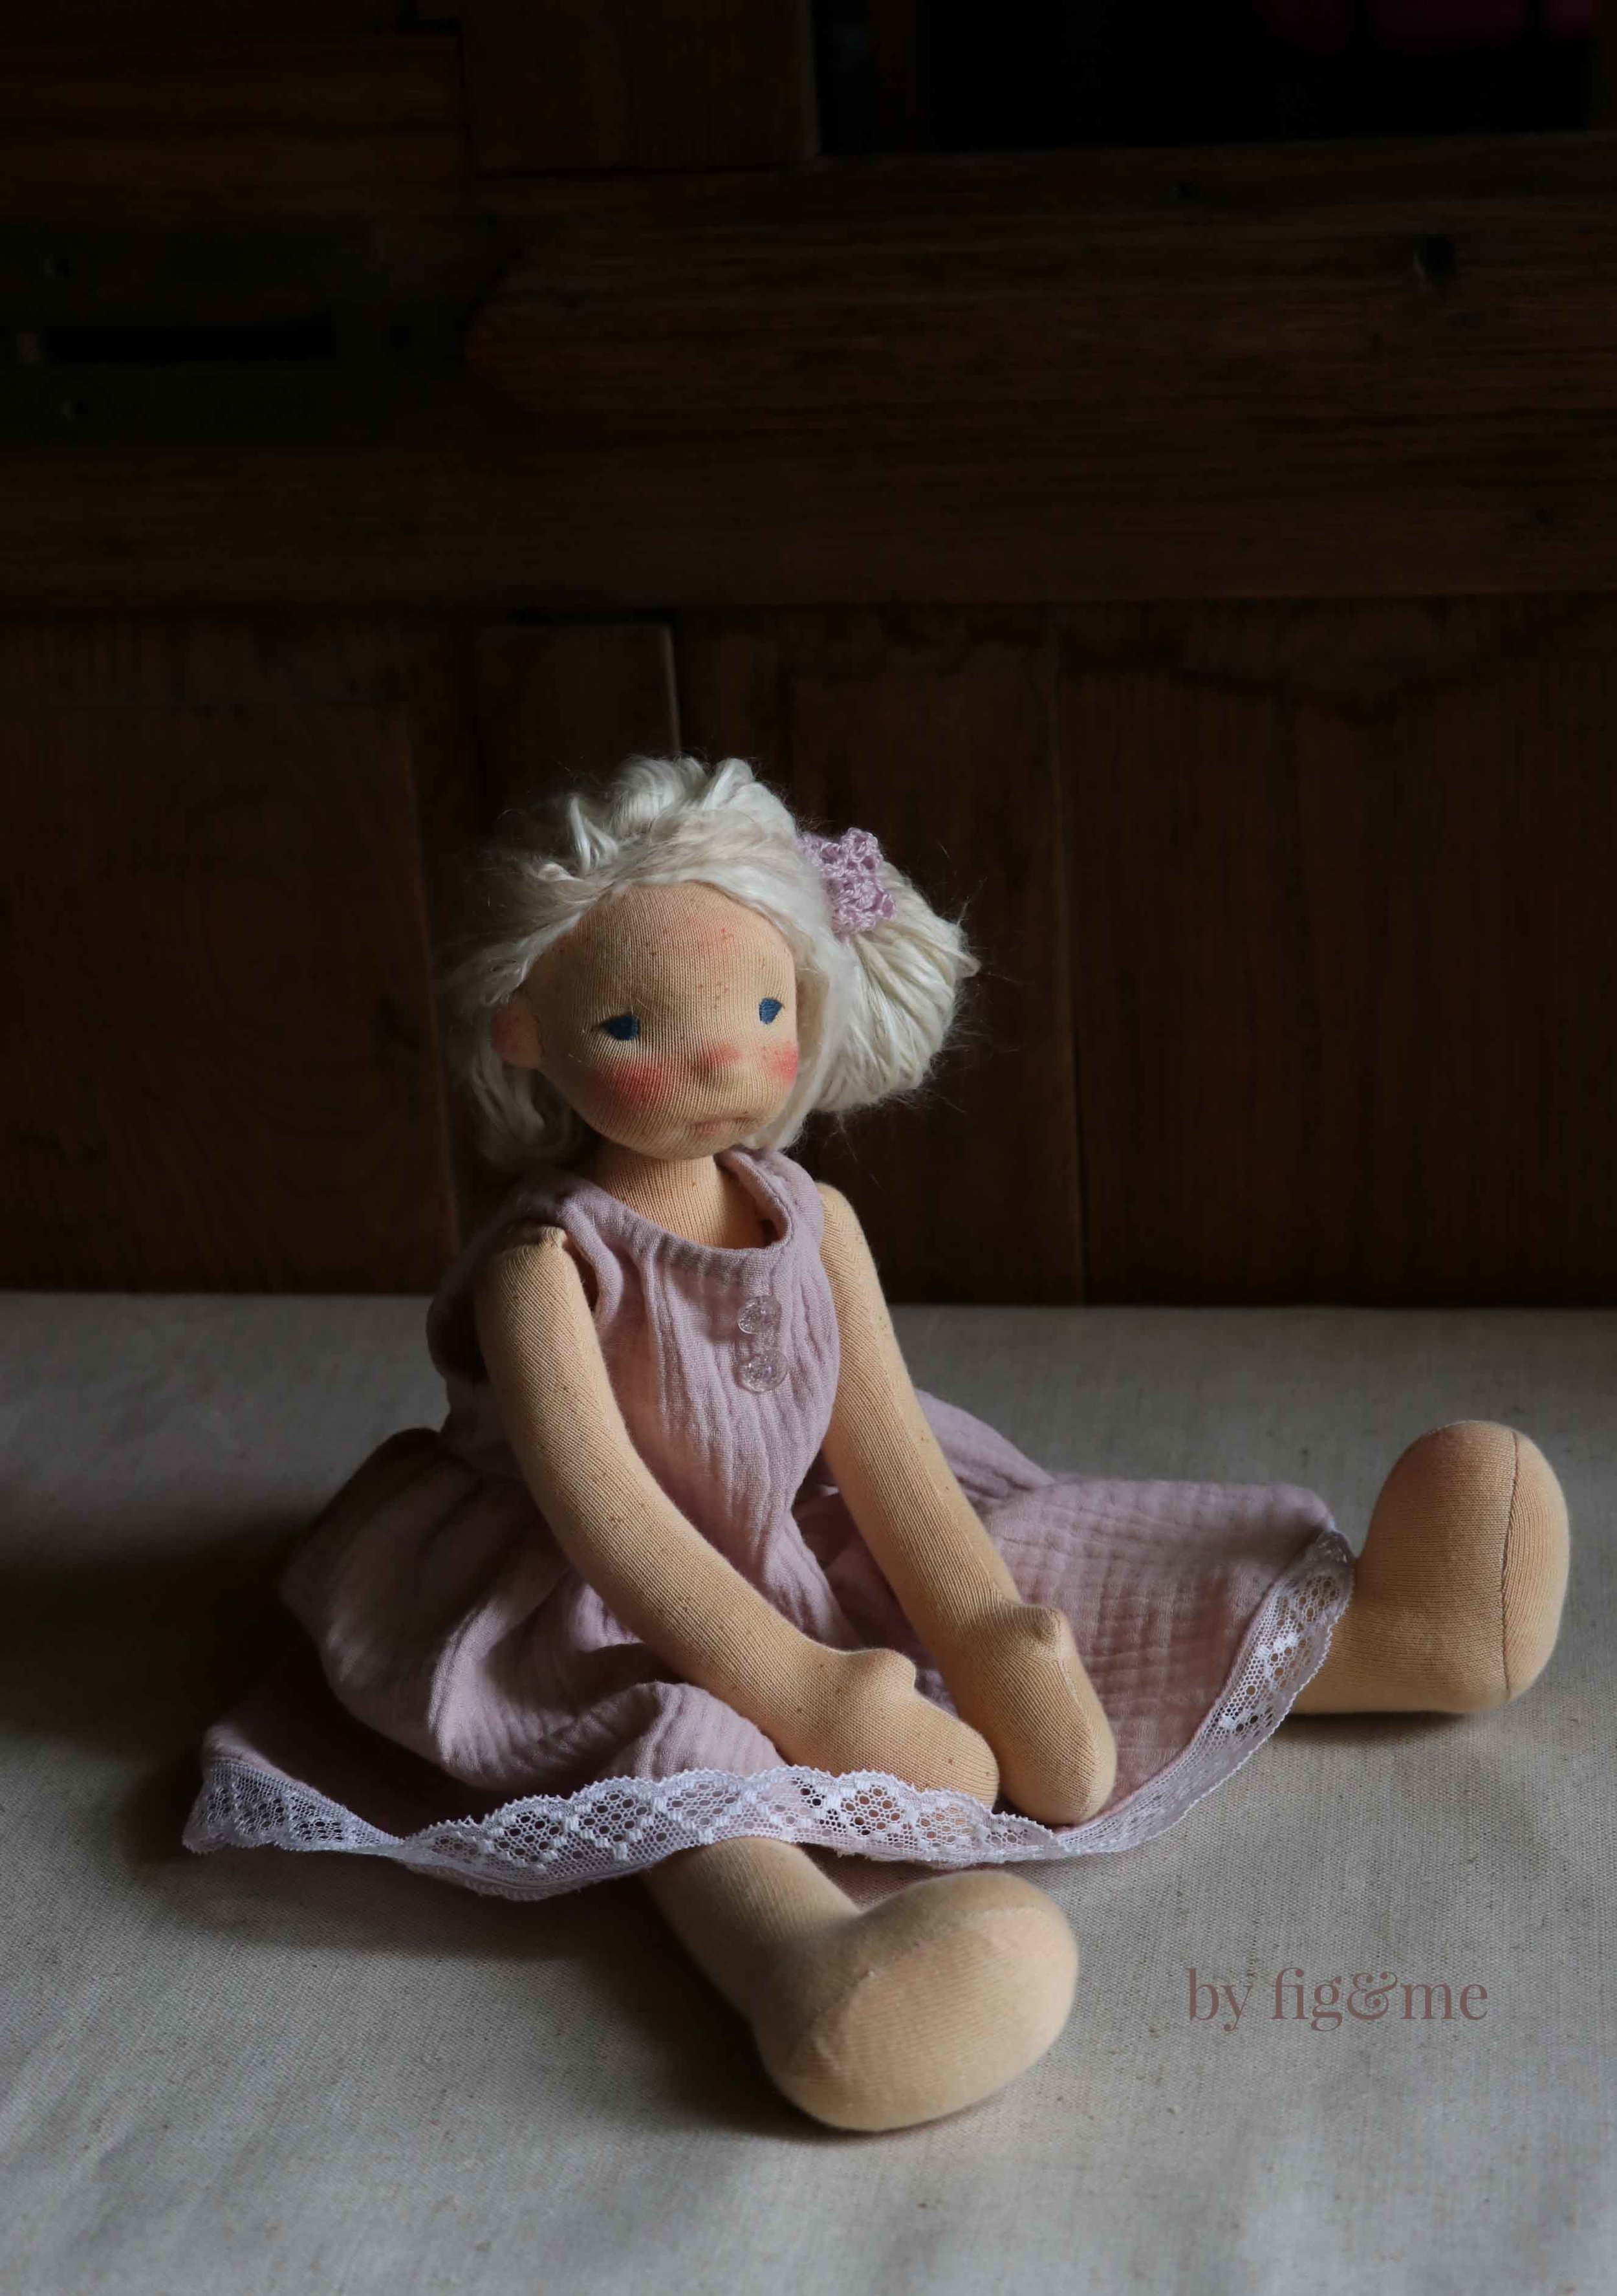 Anwen modeling her new doll dress, by Fig and Me.